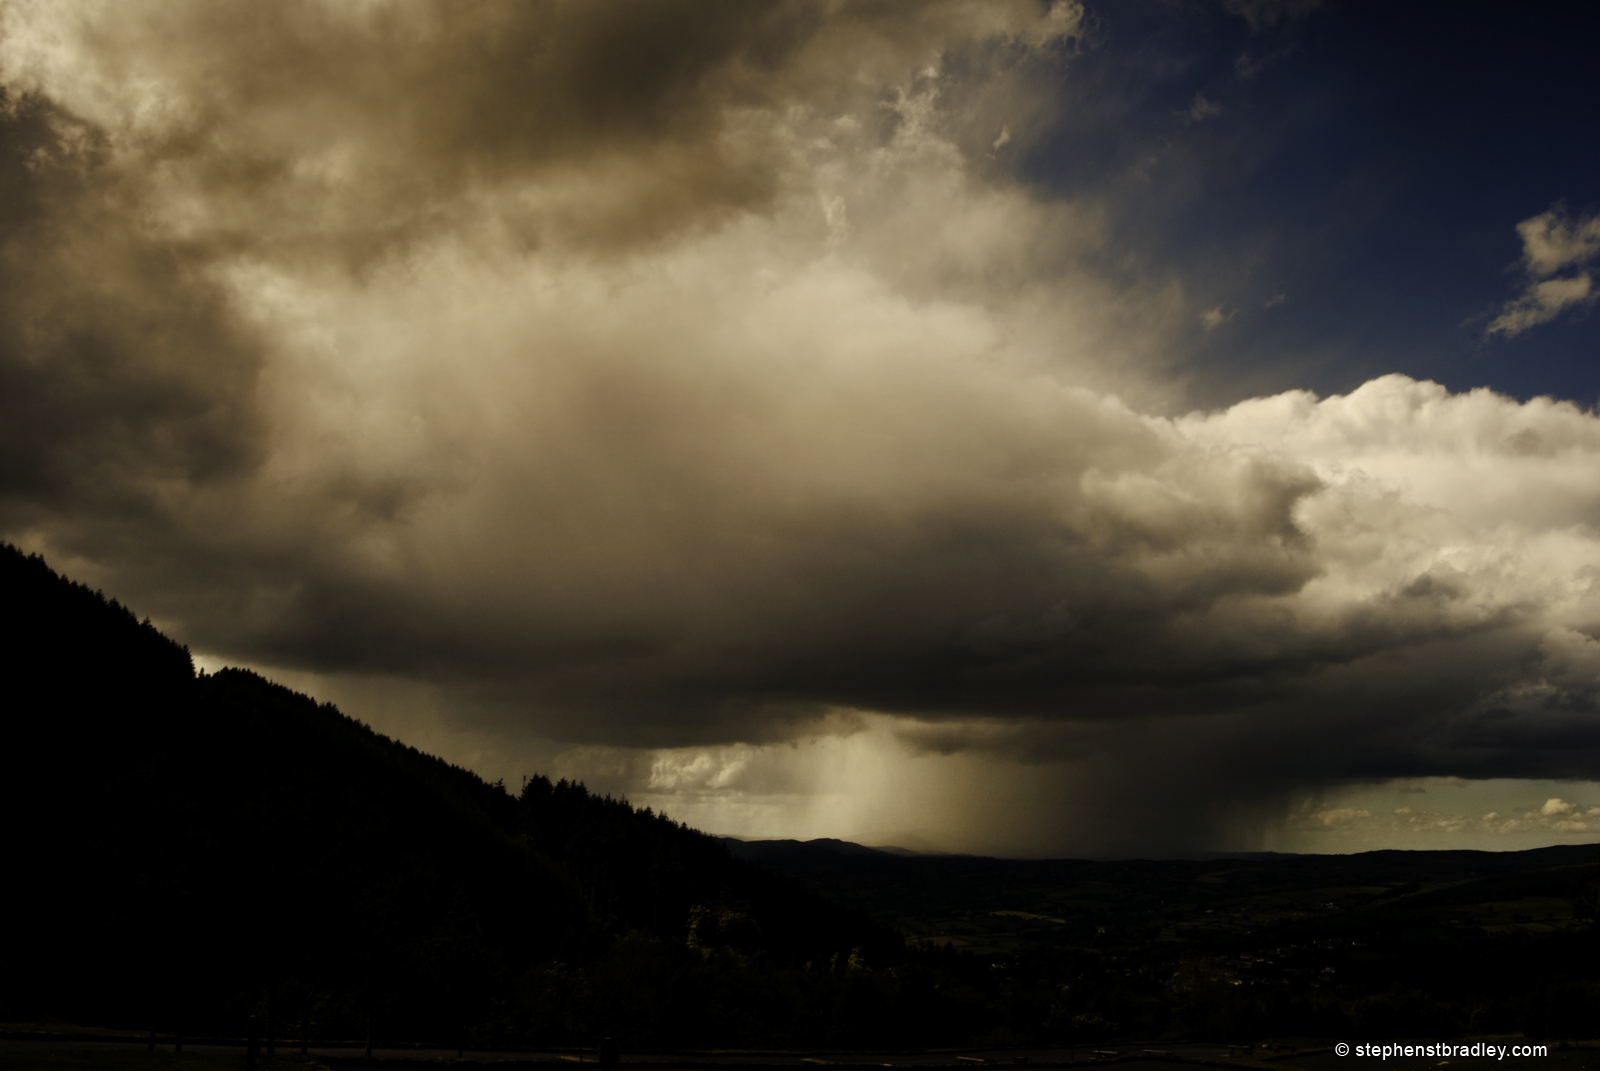 Landscape photograph of rainclouds over Rostrevor from Kilbroney Park, Northern Ireland - photo 1789-88.